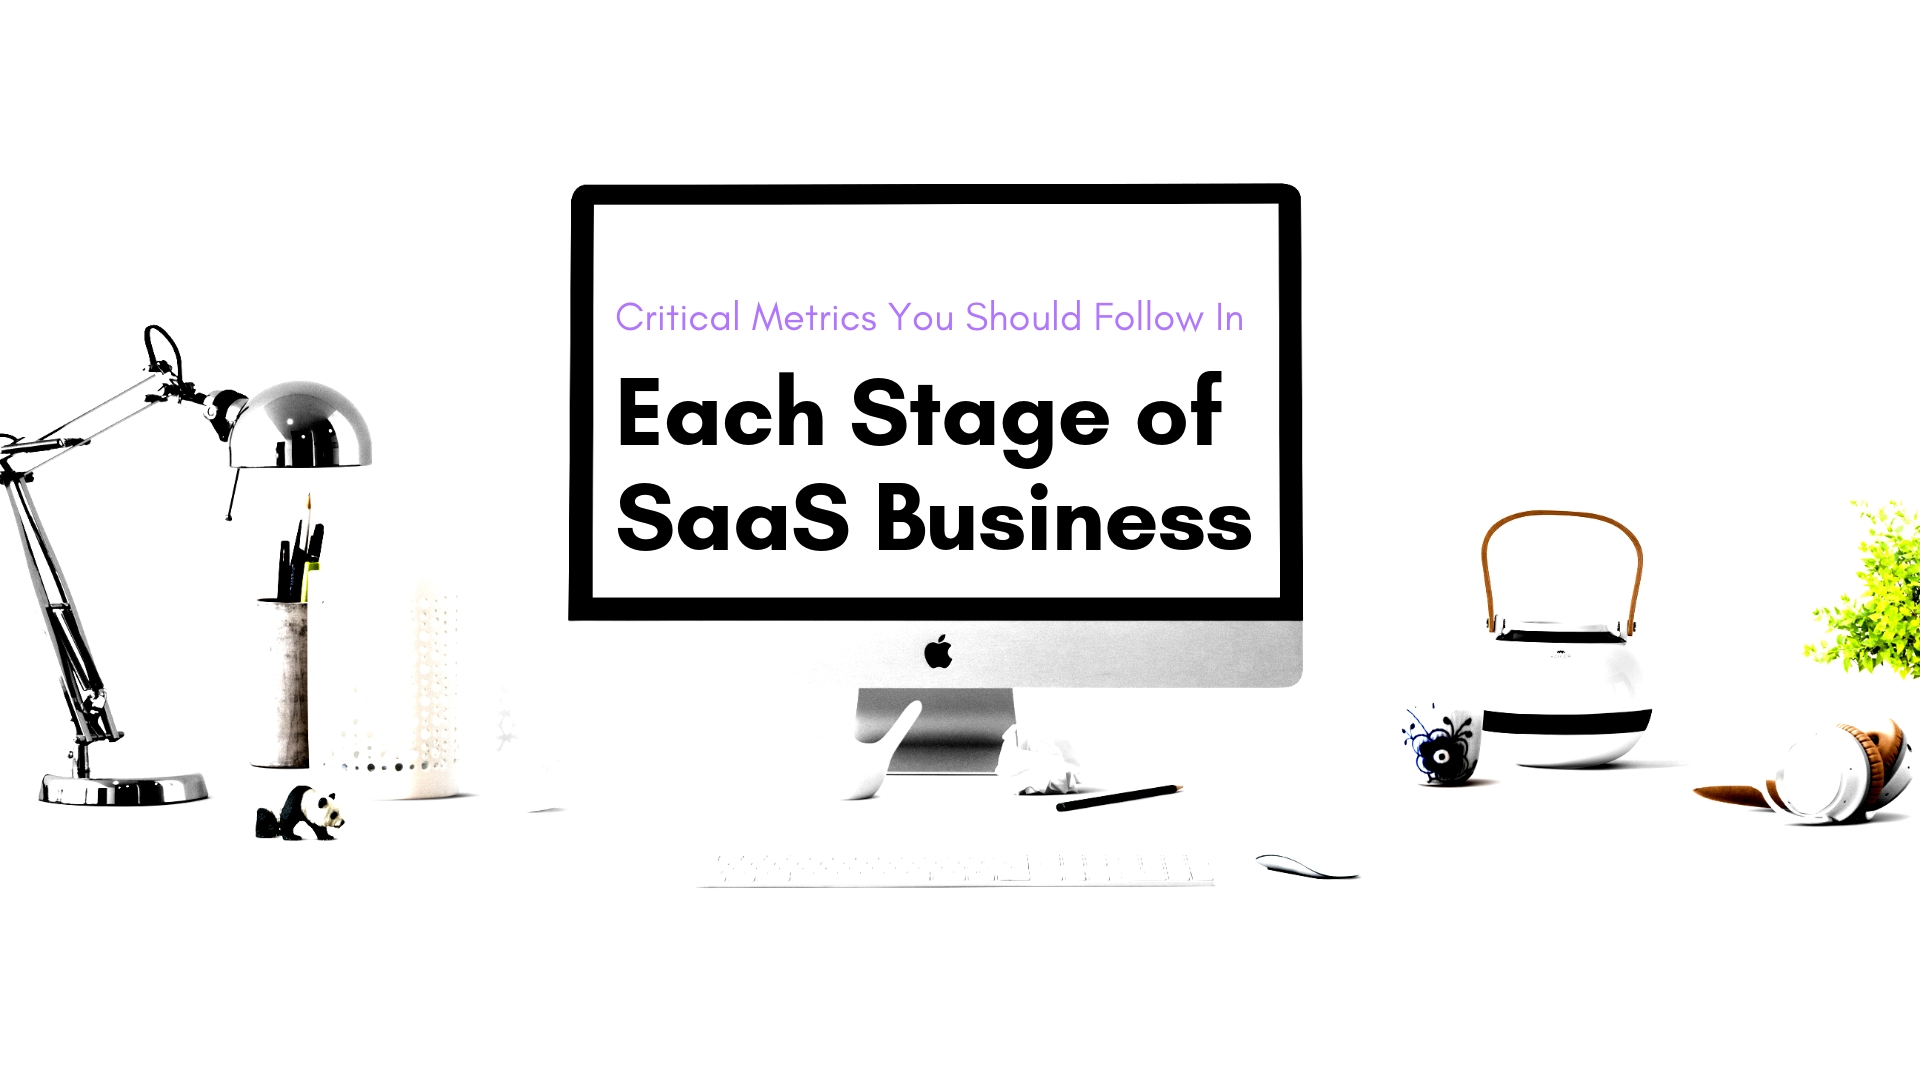 Critical Metrics You Should Follow In Each Stage of a SaaS Business